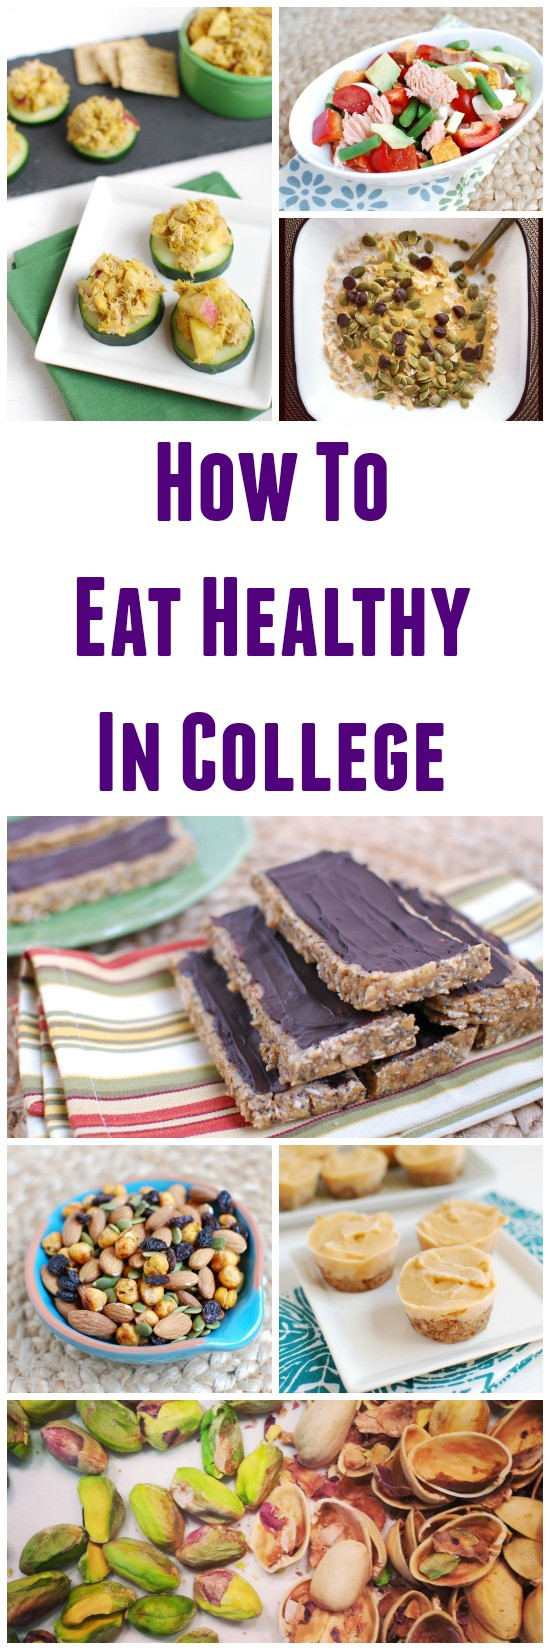 Healthy Snacks For College Dorm  How to Eat Healthy in College